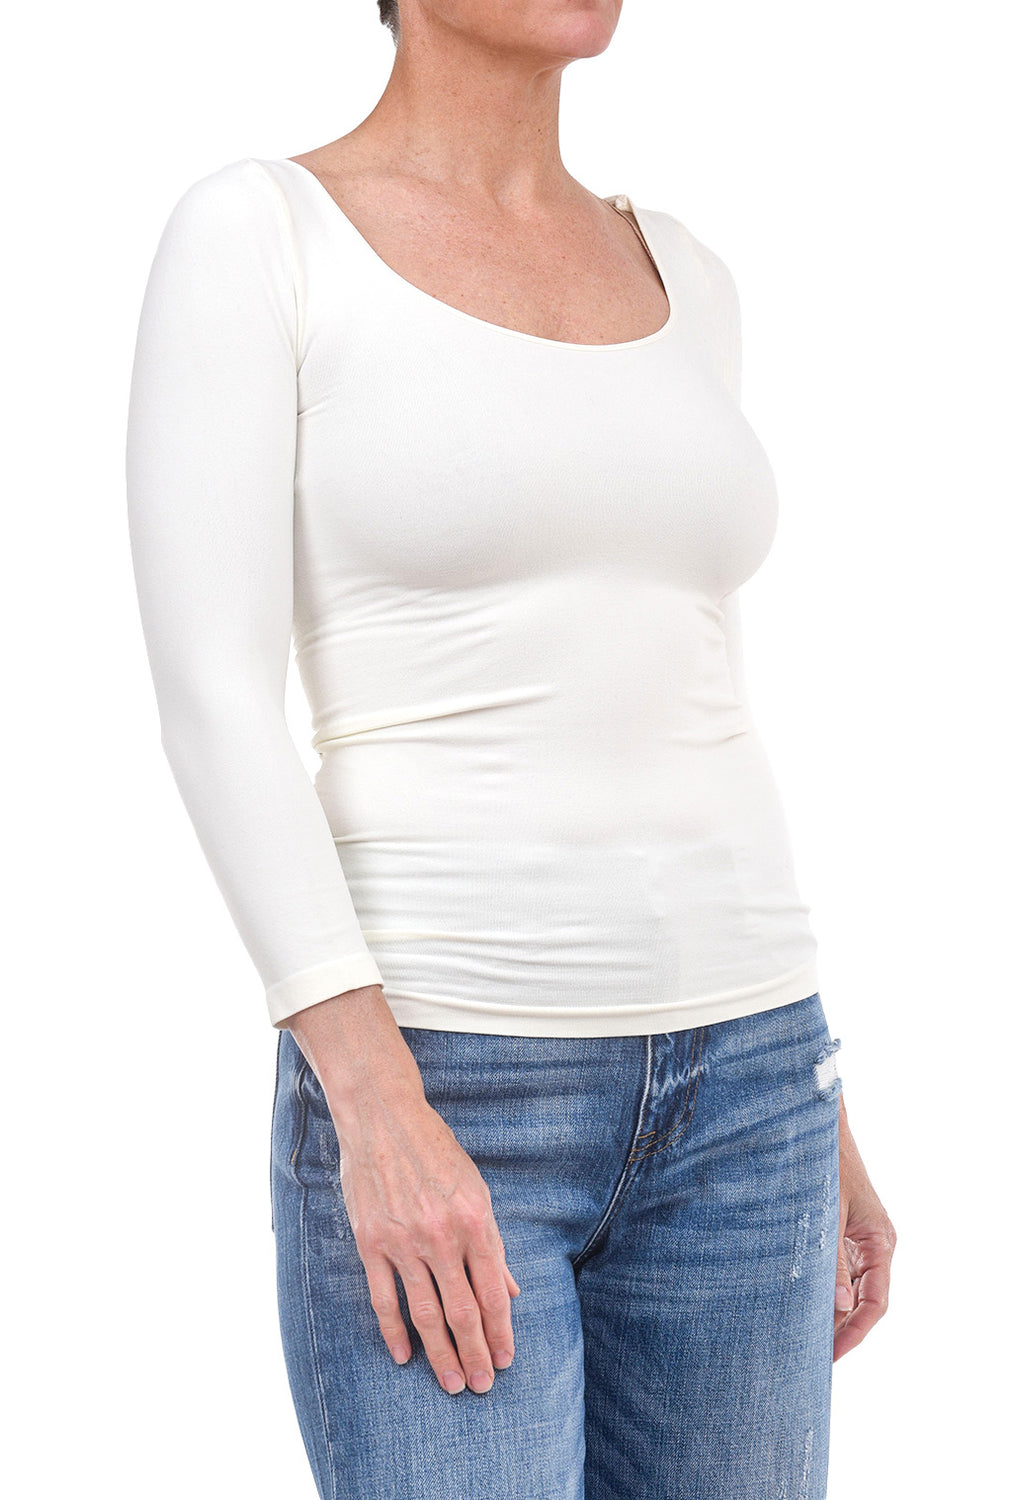 Tees by Tina 3/4-Sleeve Layer Top, White One Size